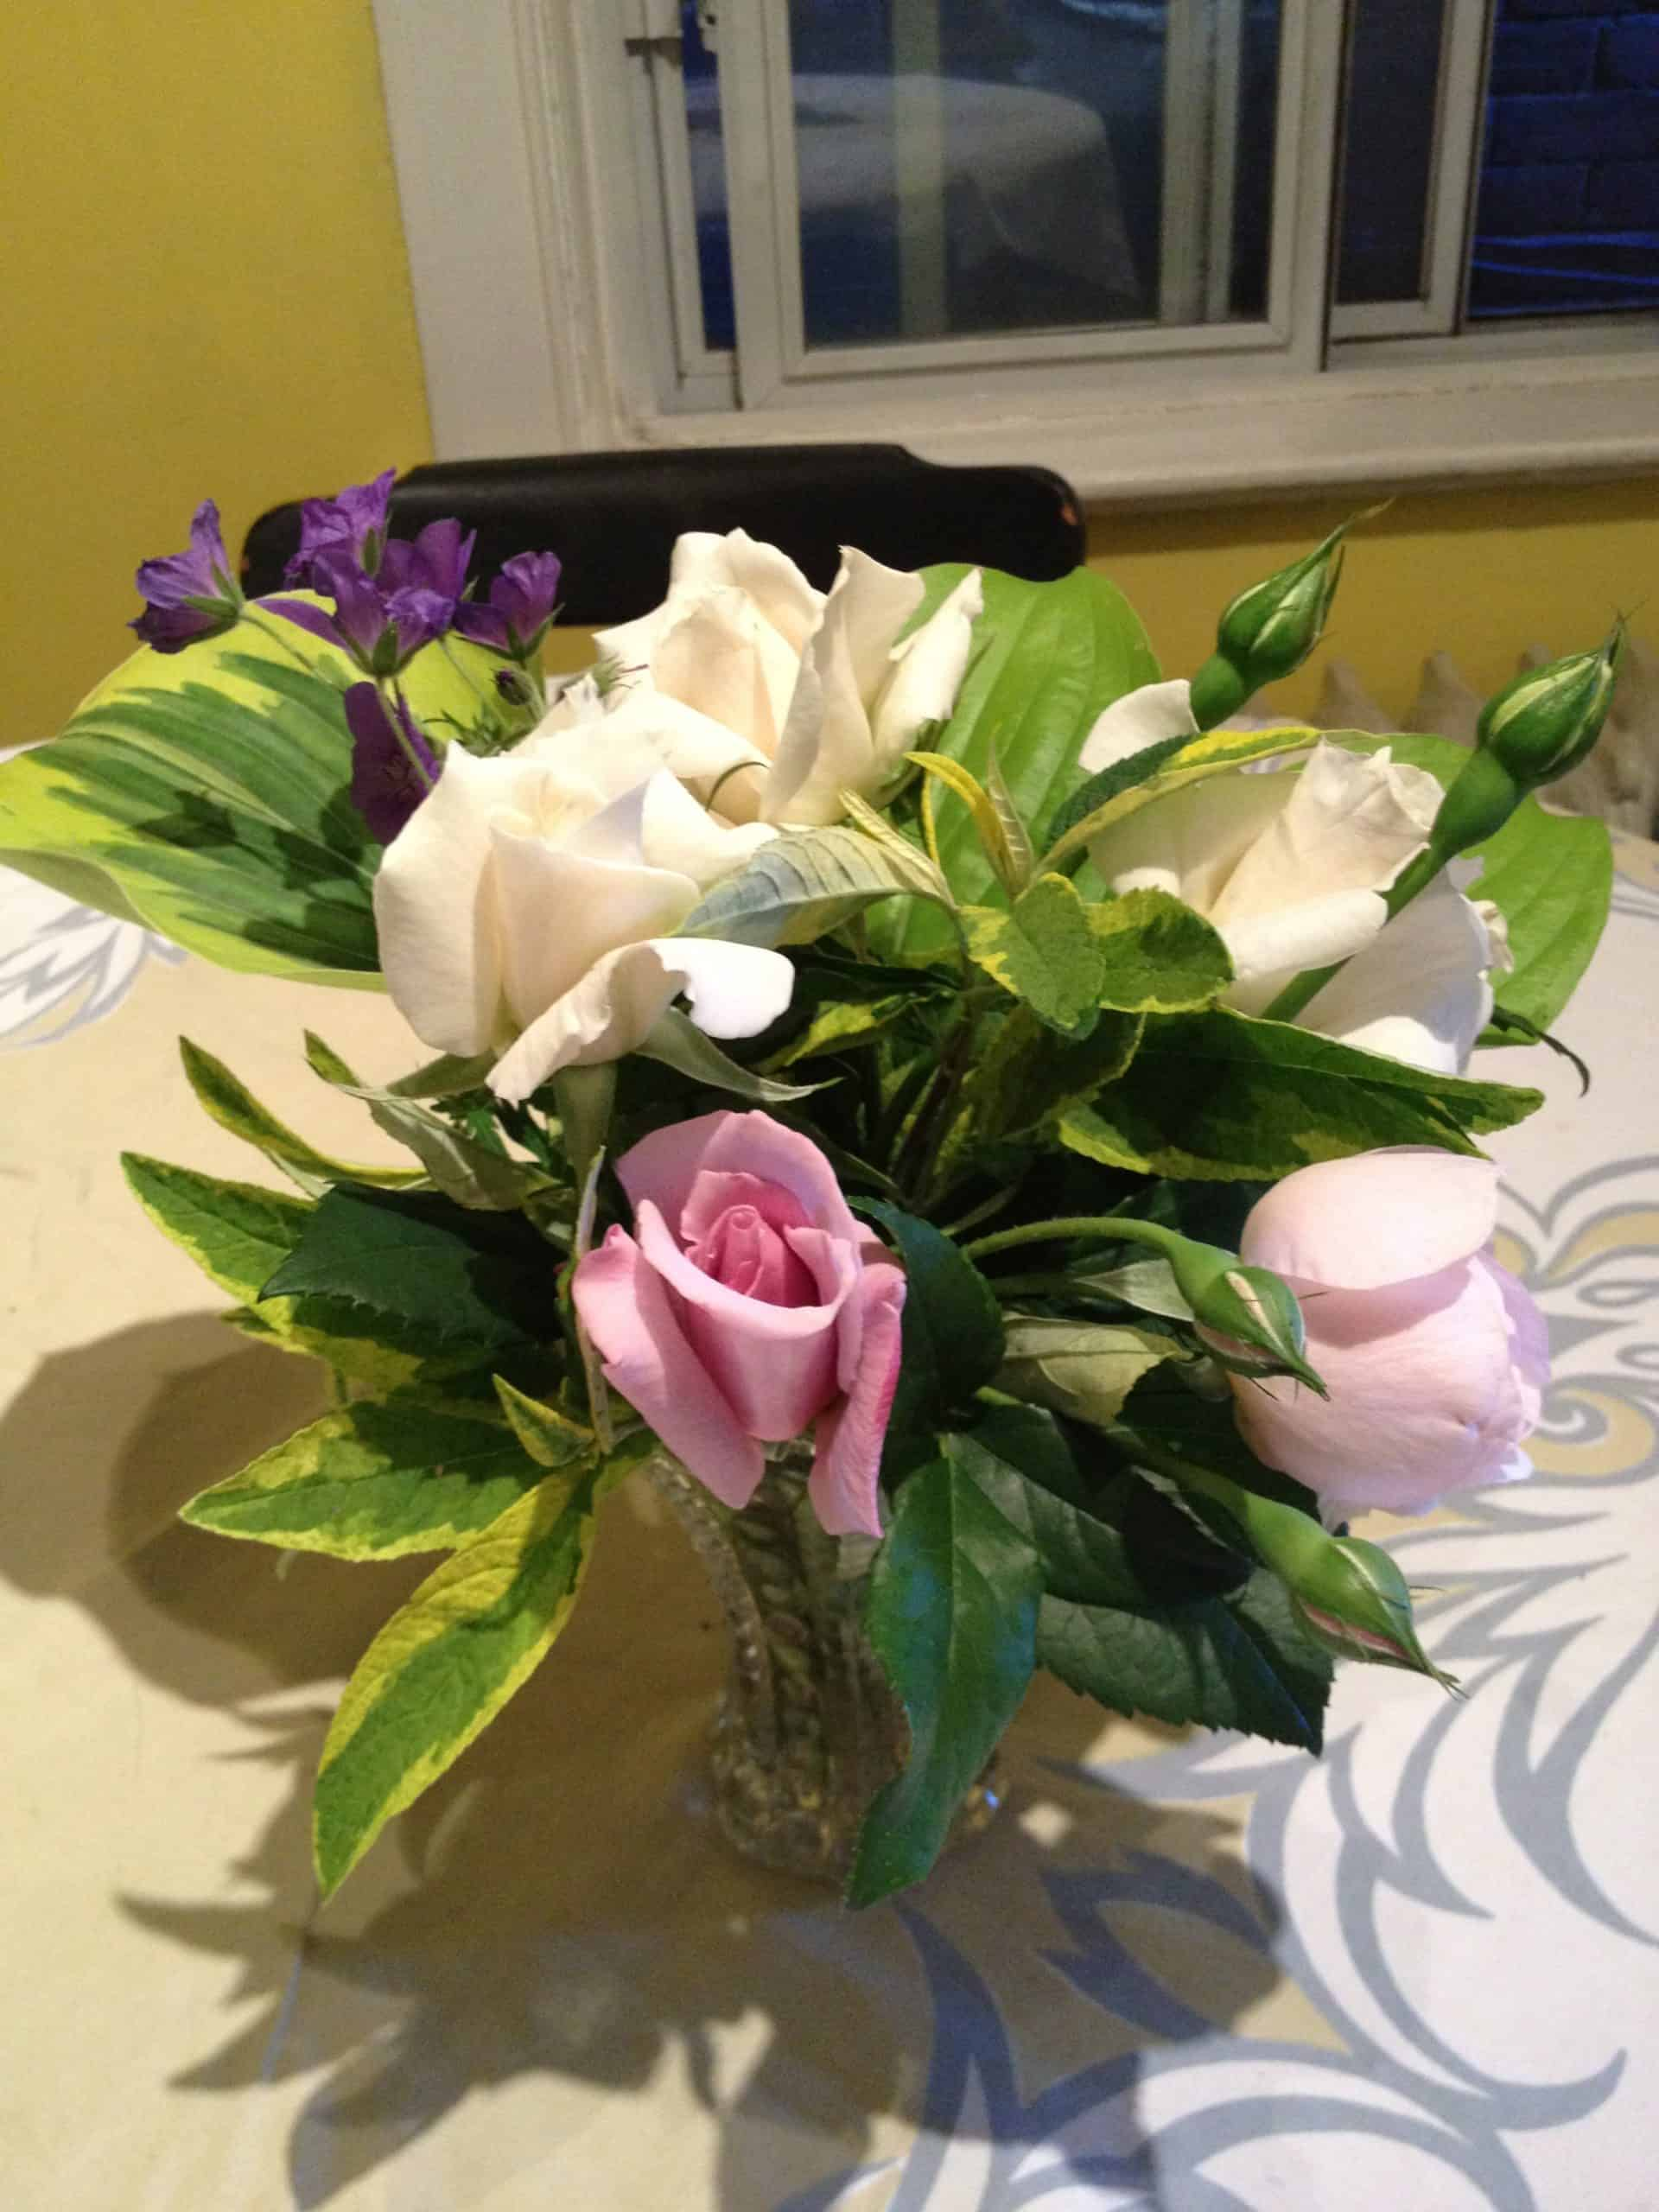 A classic flower arrangement ingredient, roses, mixed with some unconventional choices: hosta leaves, geraniums and variegated foliage from a butterfly bush.